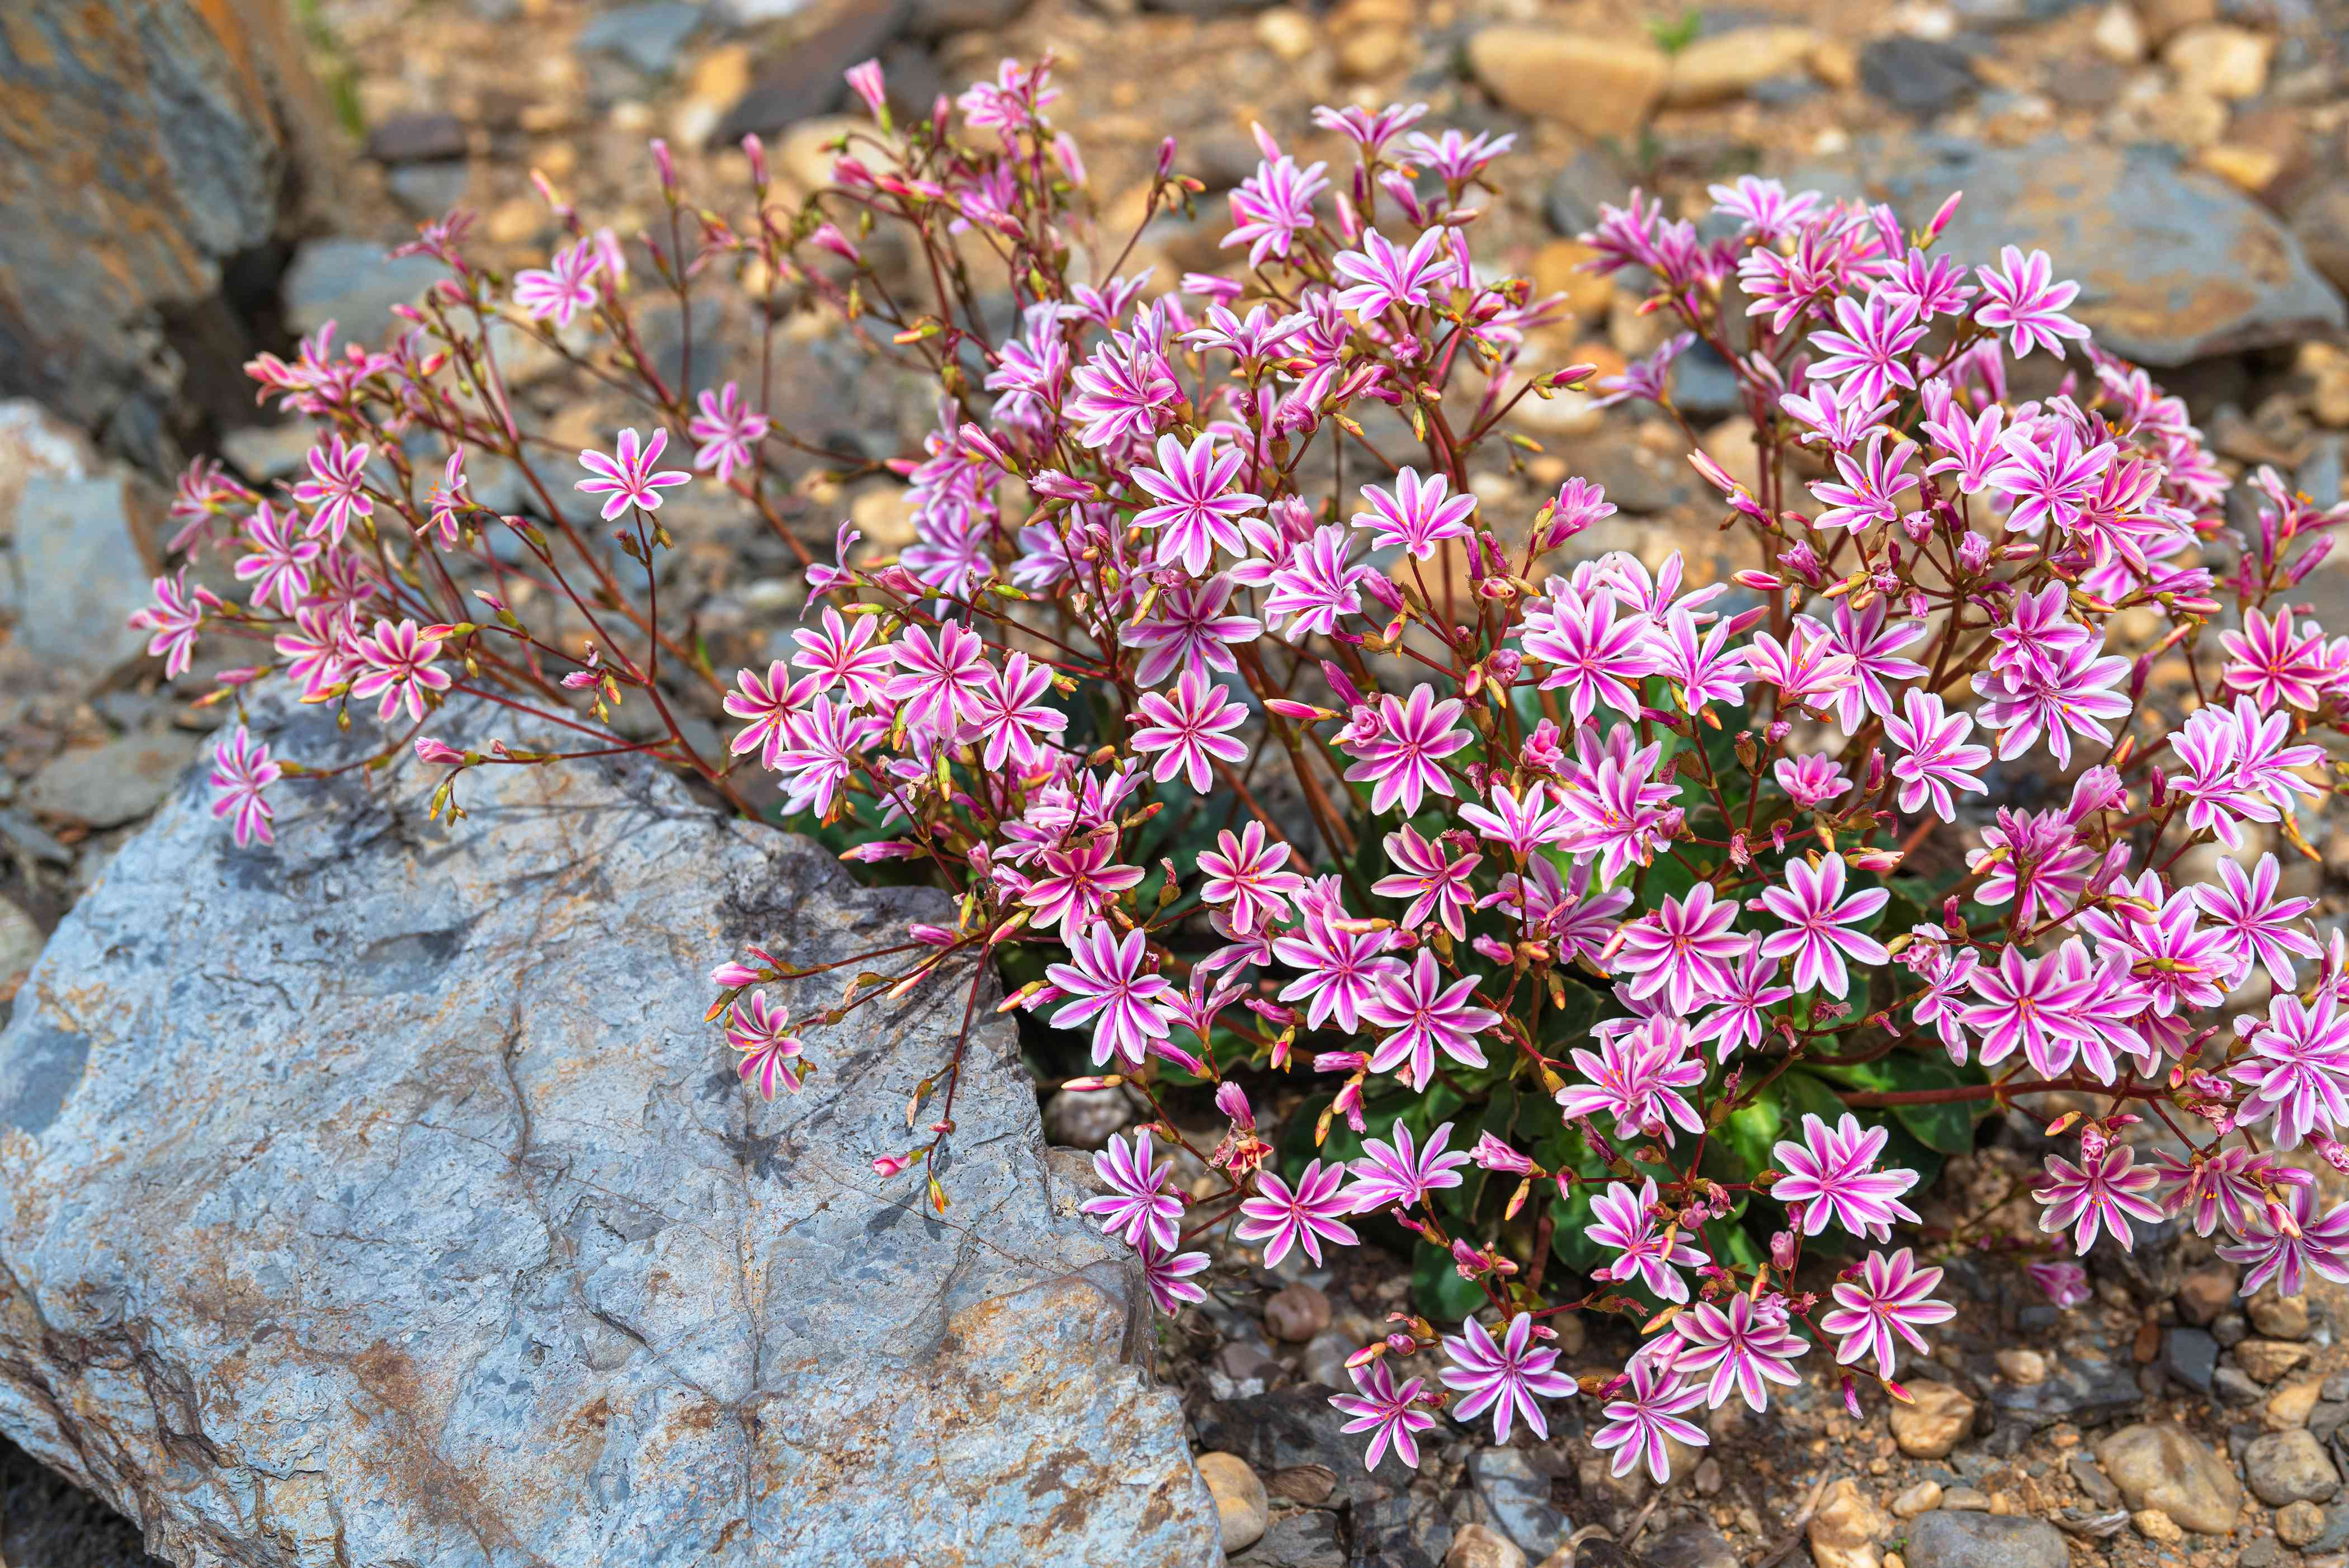 Rainbow lewisia plant with pink and white flowers clustered around rock